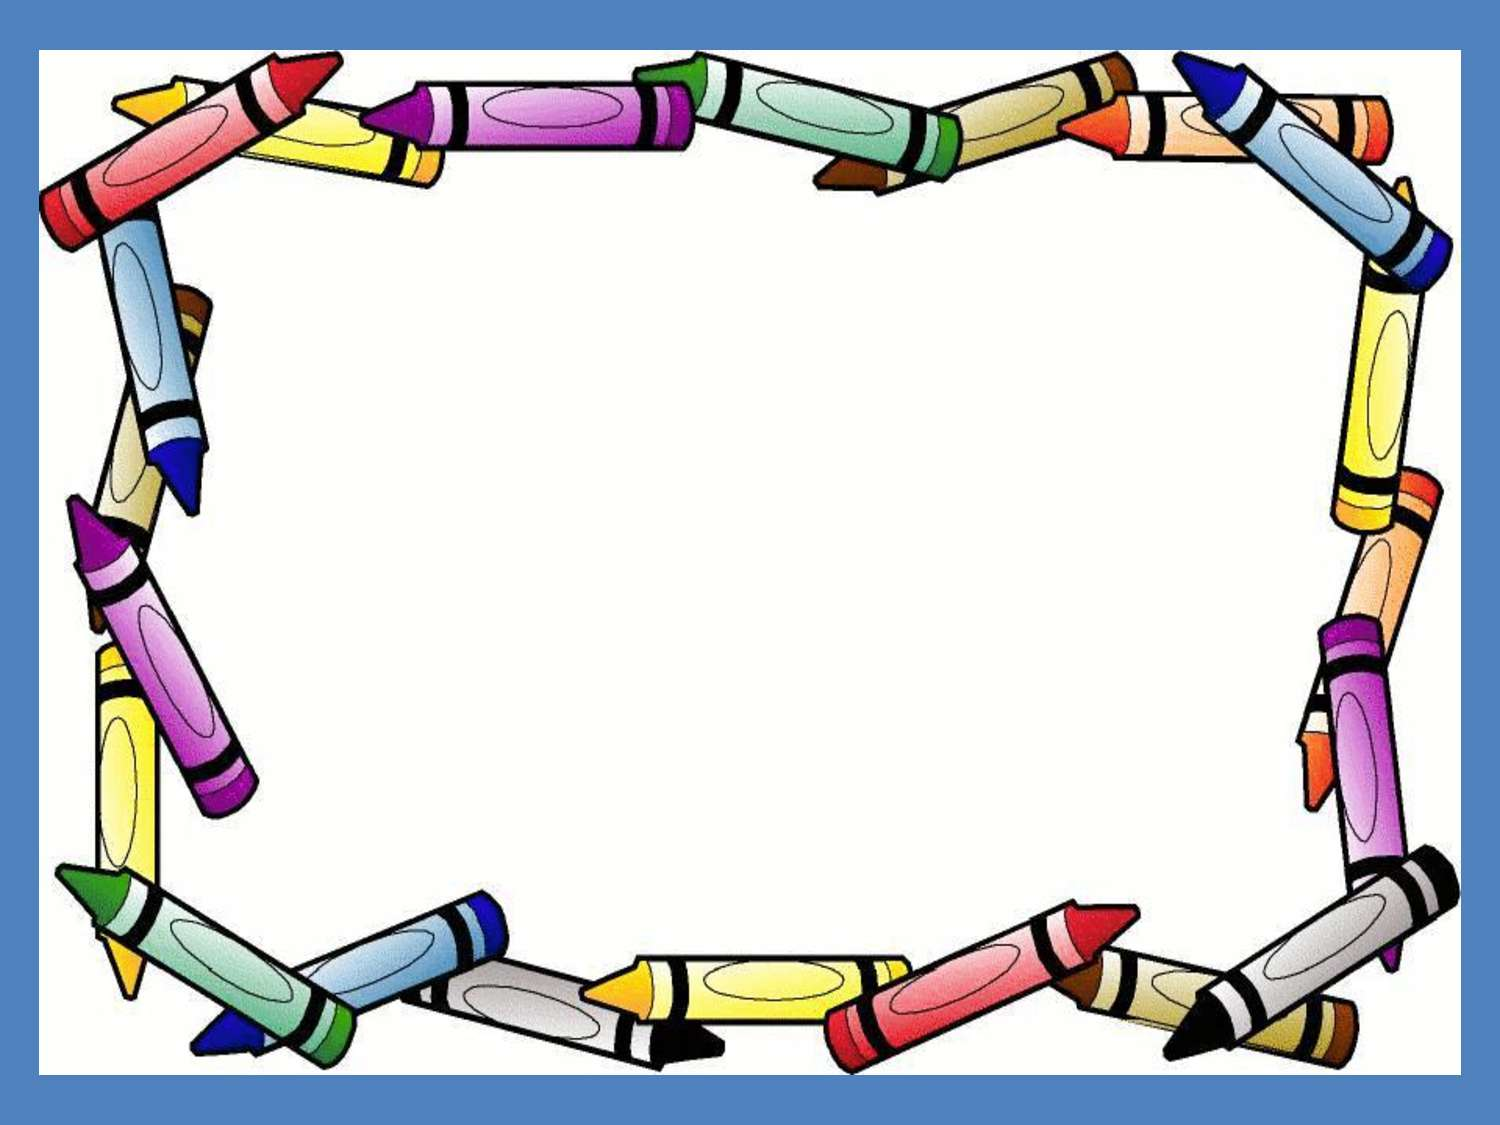 Crayon Border For Microsoft Word - ClipArt Best